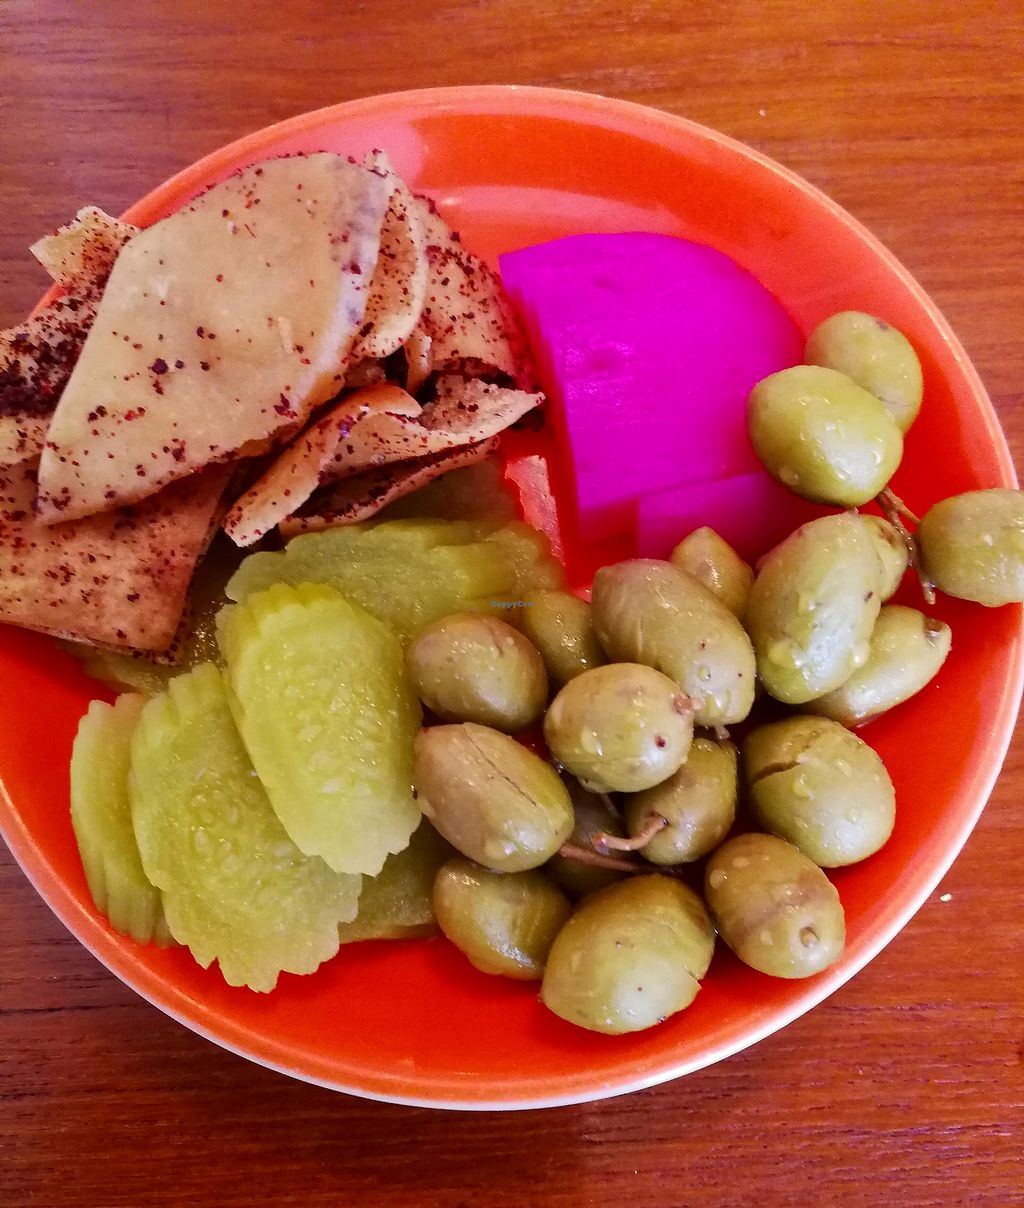 """Photo of Love and Peas  by <a href=""""/members/profile/Gudrun"""">Gudrun</a> <br/>Starter with pickles <br/> November 6, 2017  - <a href='/contact/abuse/image/59704/322415'>Report</a>"""